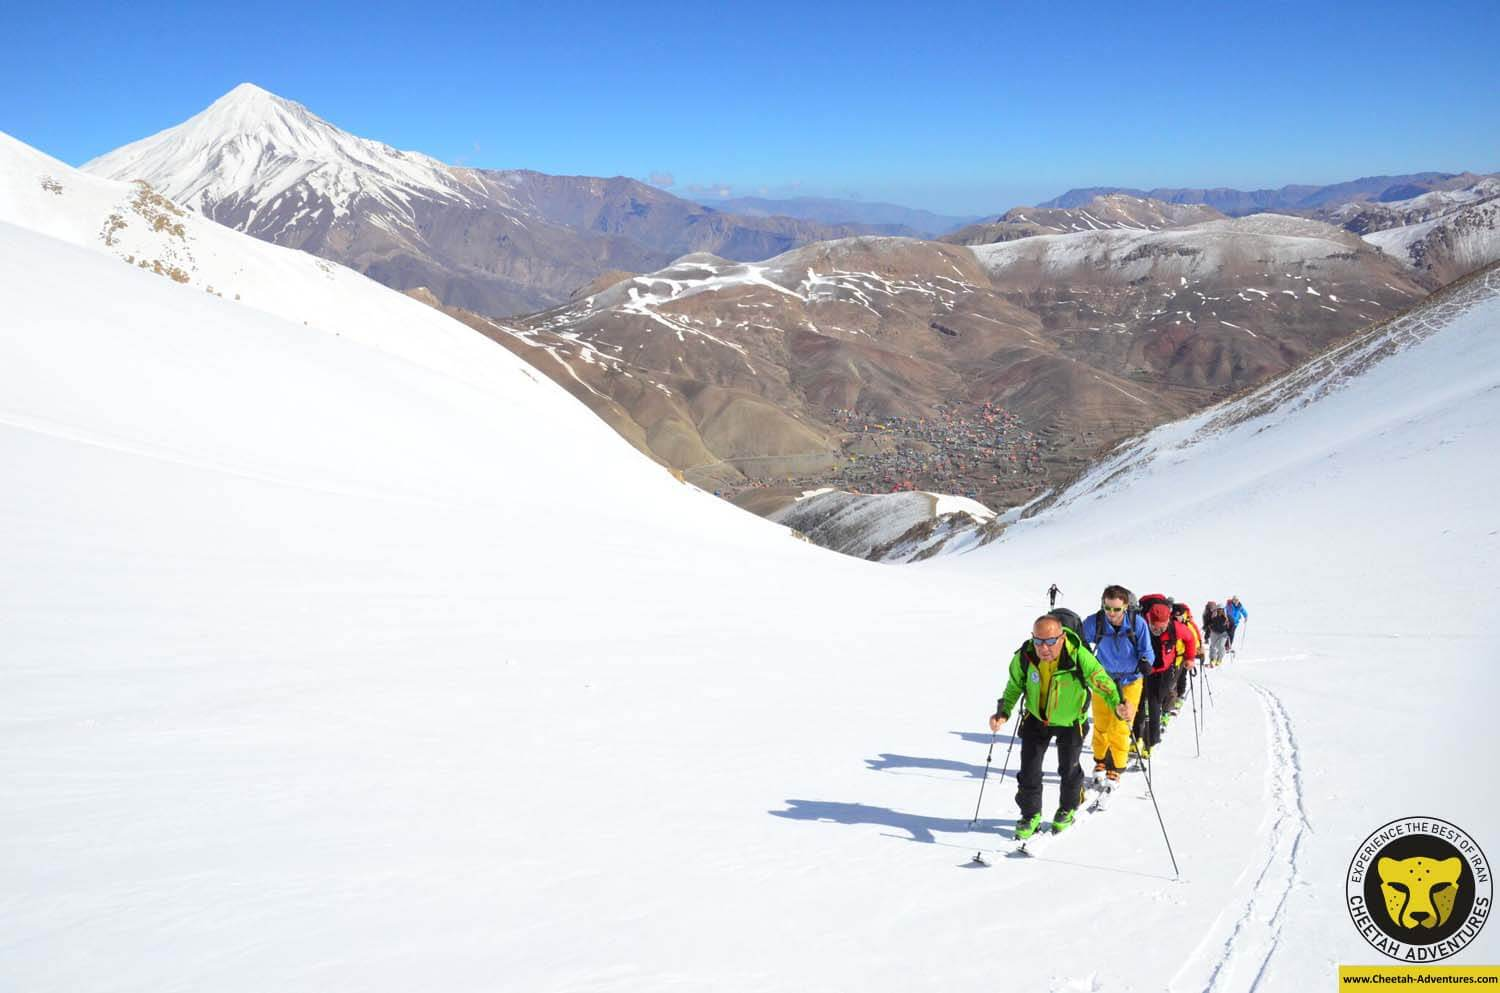 3 Ski touring on Doberar Range, to the summit of Angemar Peak (4050m), Damavand ski tour